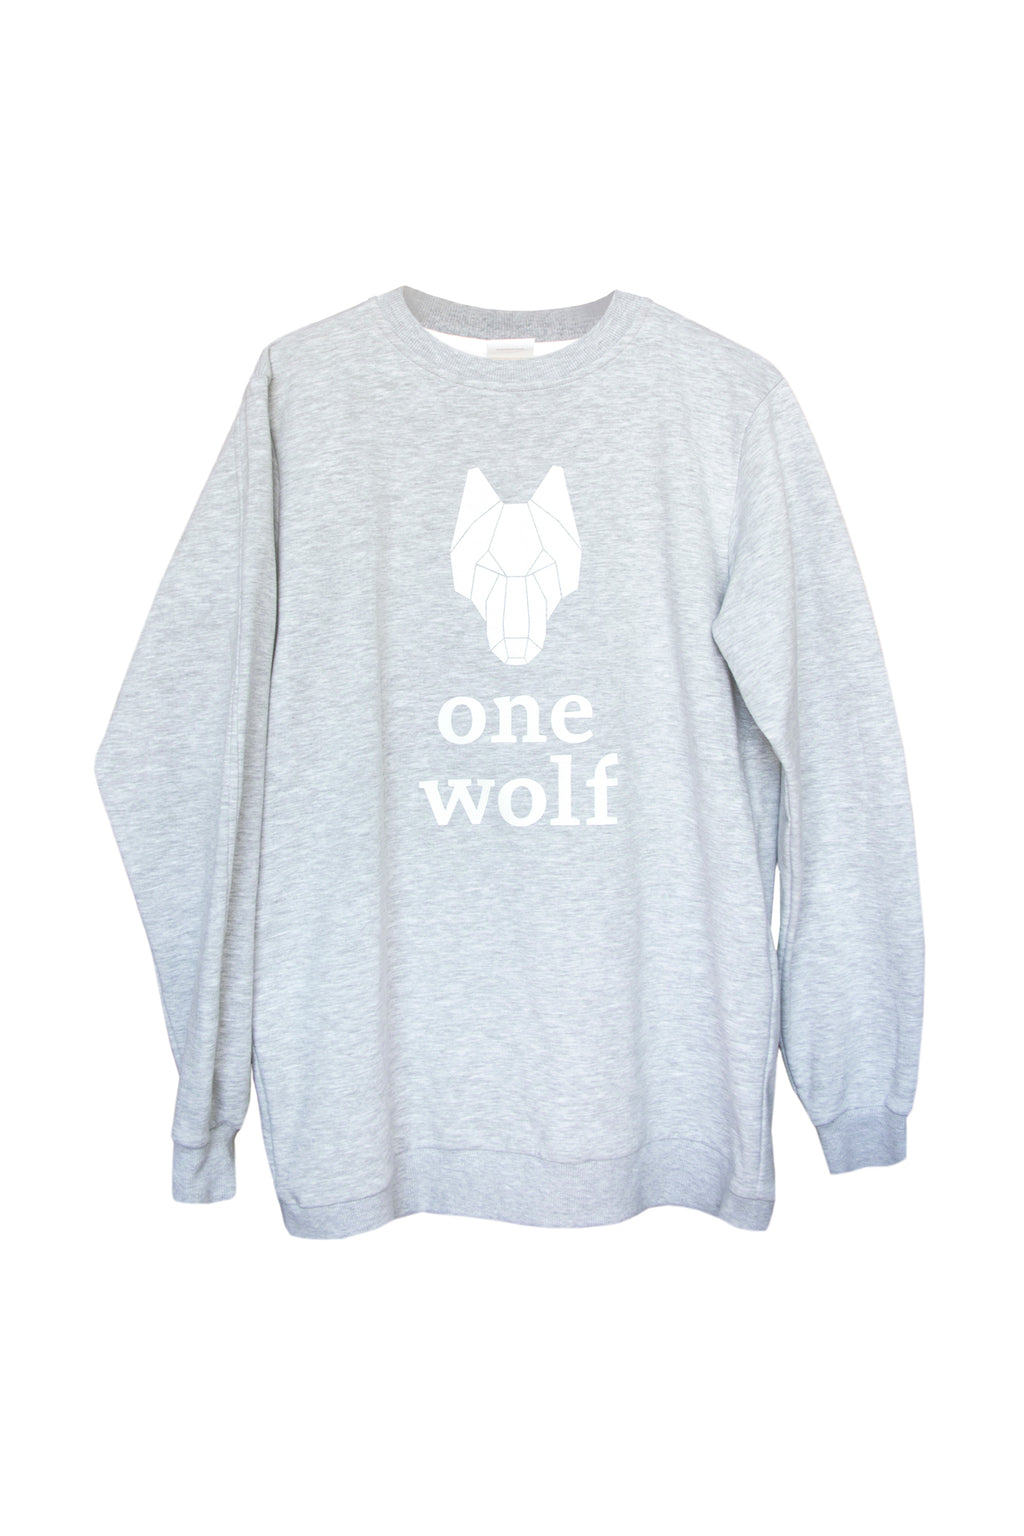 ONE WOLF LOGO COMFORT sweater grey/white logo - One Wolf